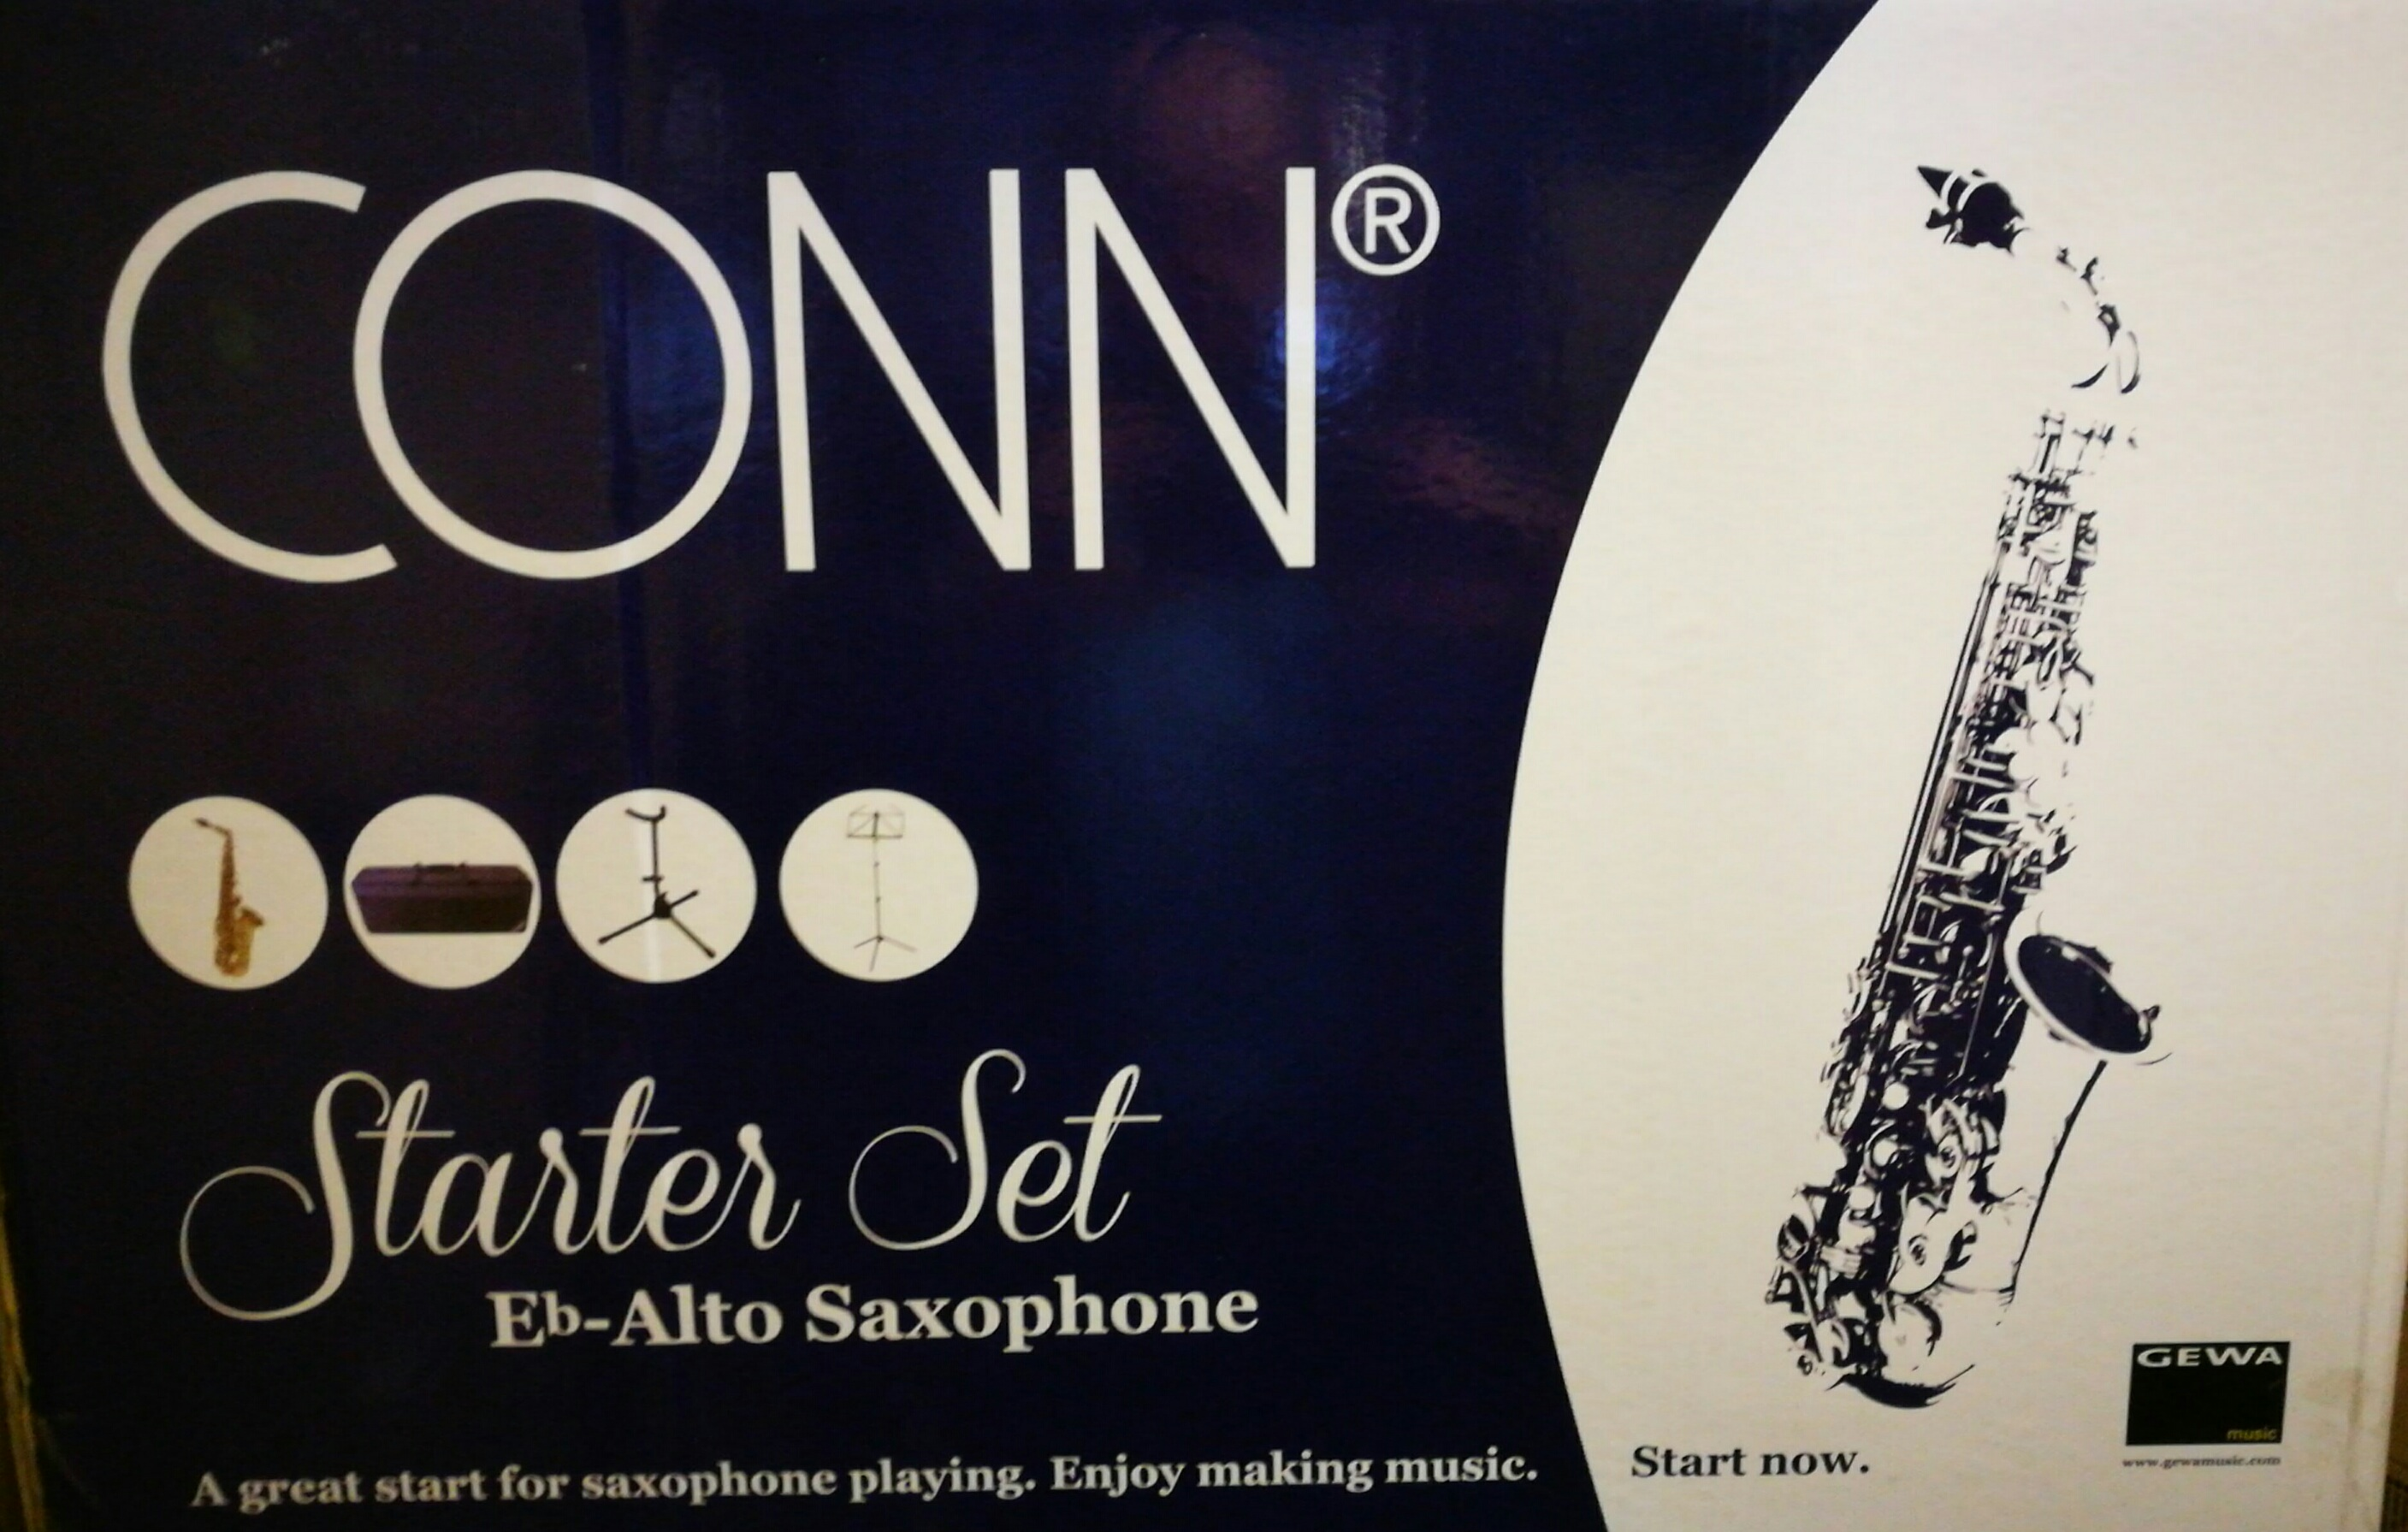 Alt saxofón AS 710 Starter set Conn